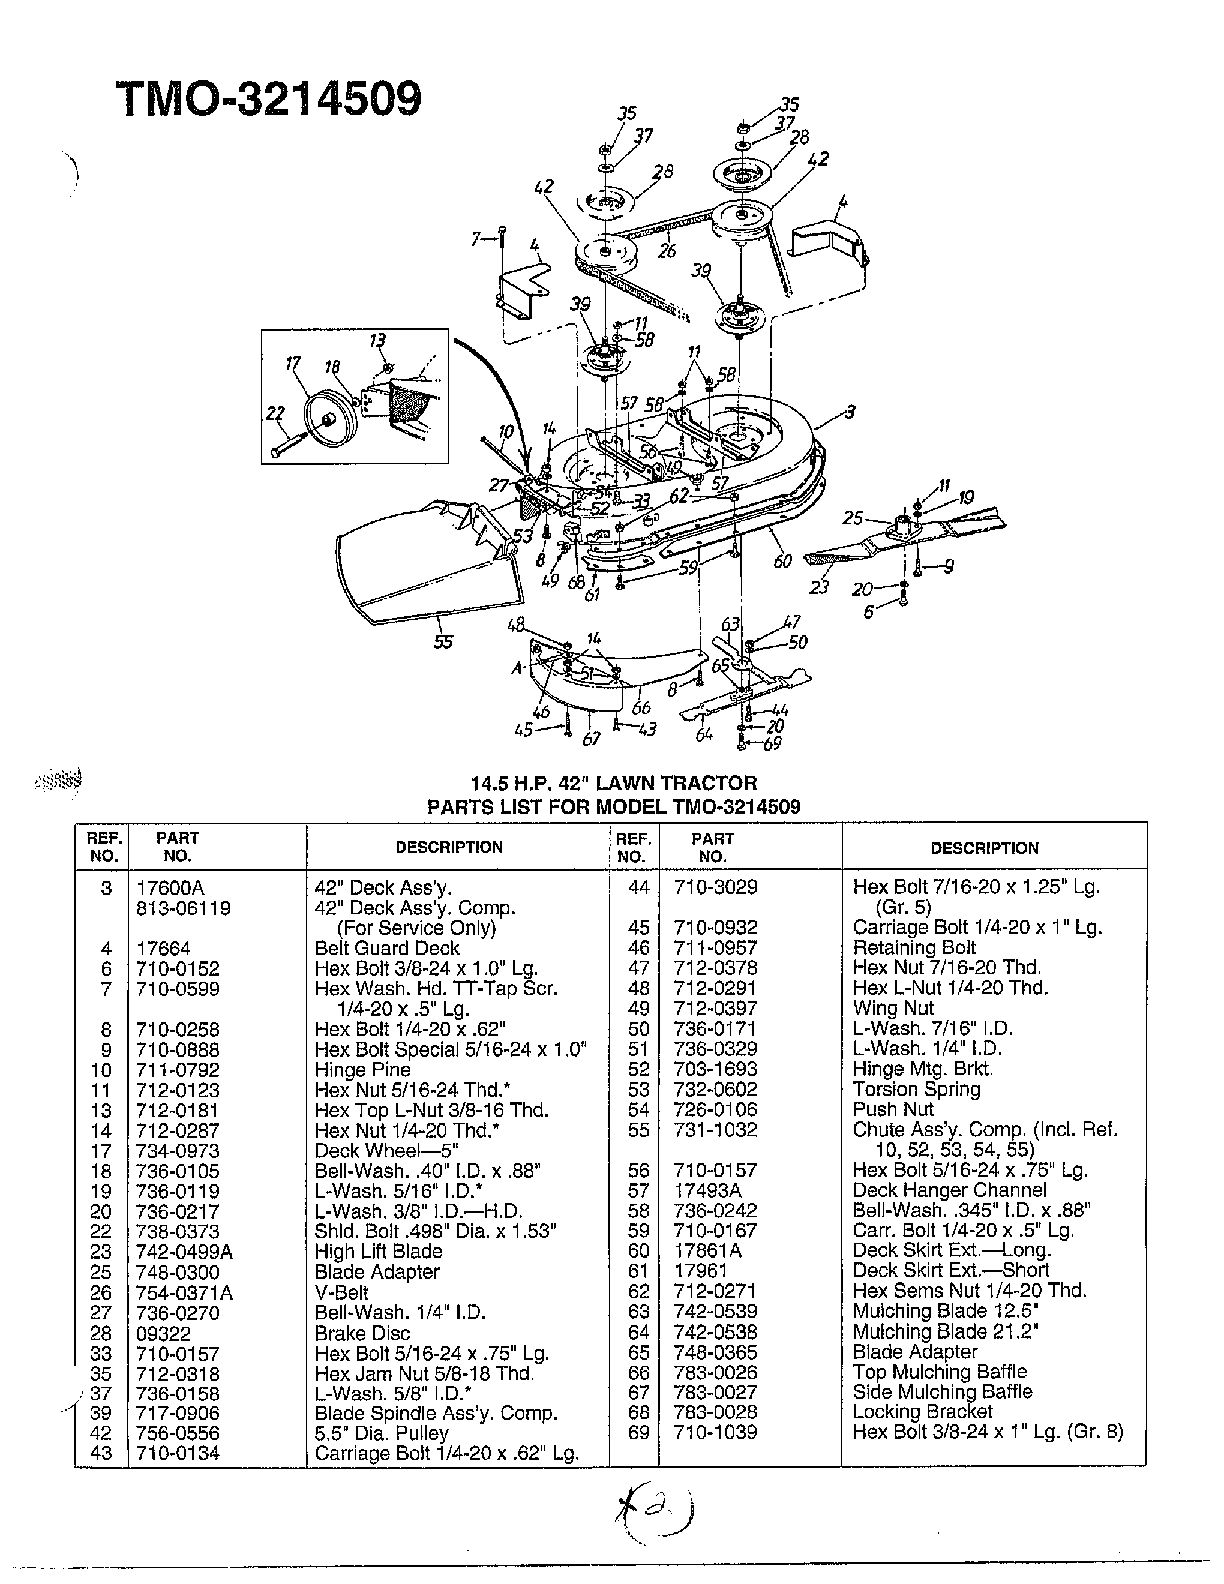 Mtd Lawn Mower Wiring Diagram | Wiring Diagram - Mtd Riding Lawn Mower Wiring Diagram